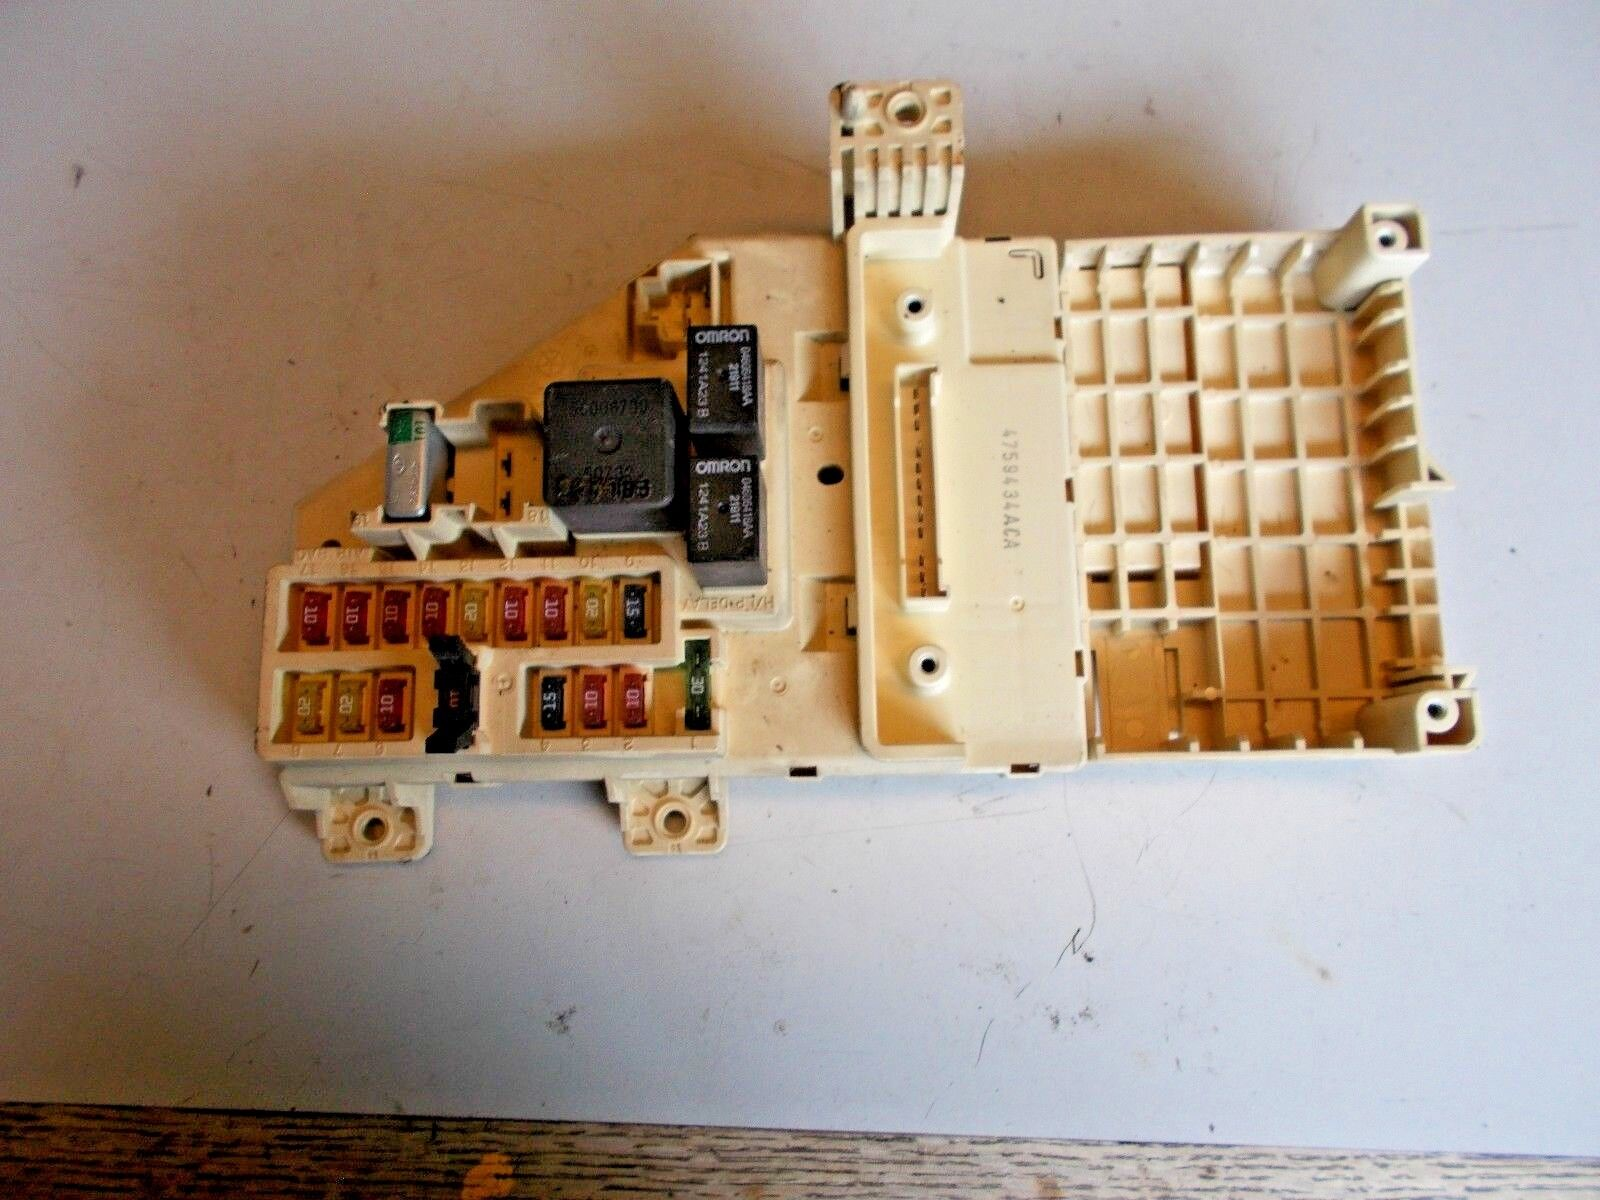 Used 2003 Dodge Stratus Dash Parts For Sale Fuse Box 2006 Interior Oem 4759434aca Free Shipping 1930 Day Warrant